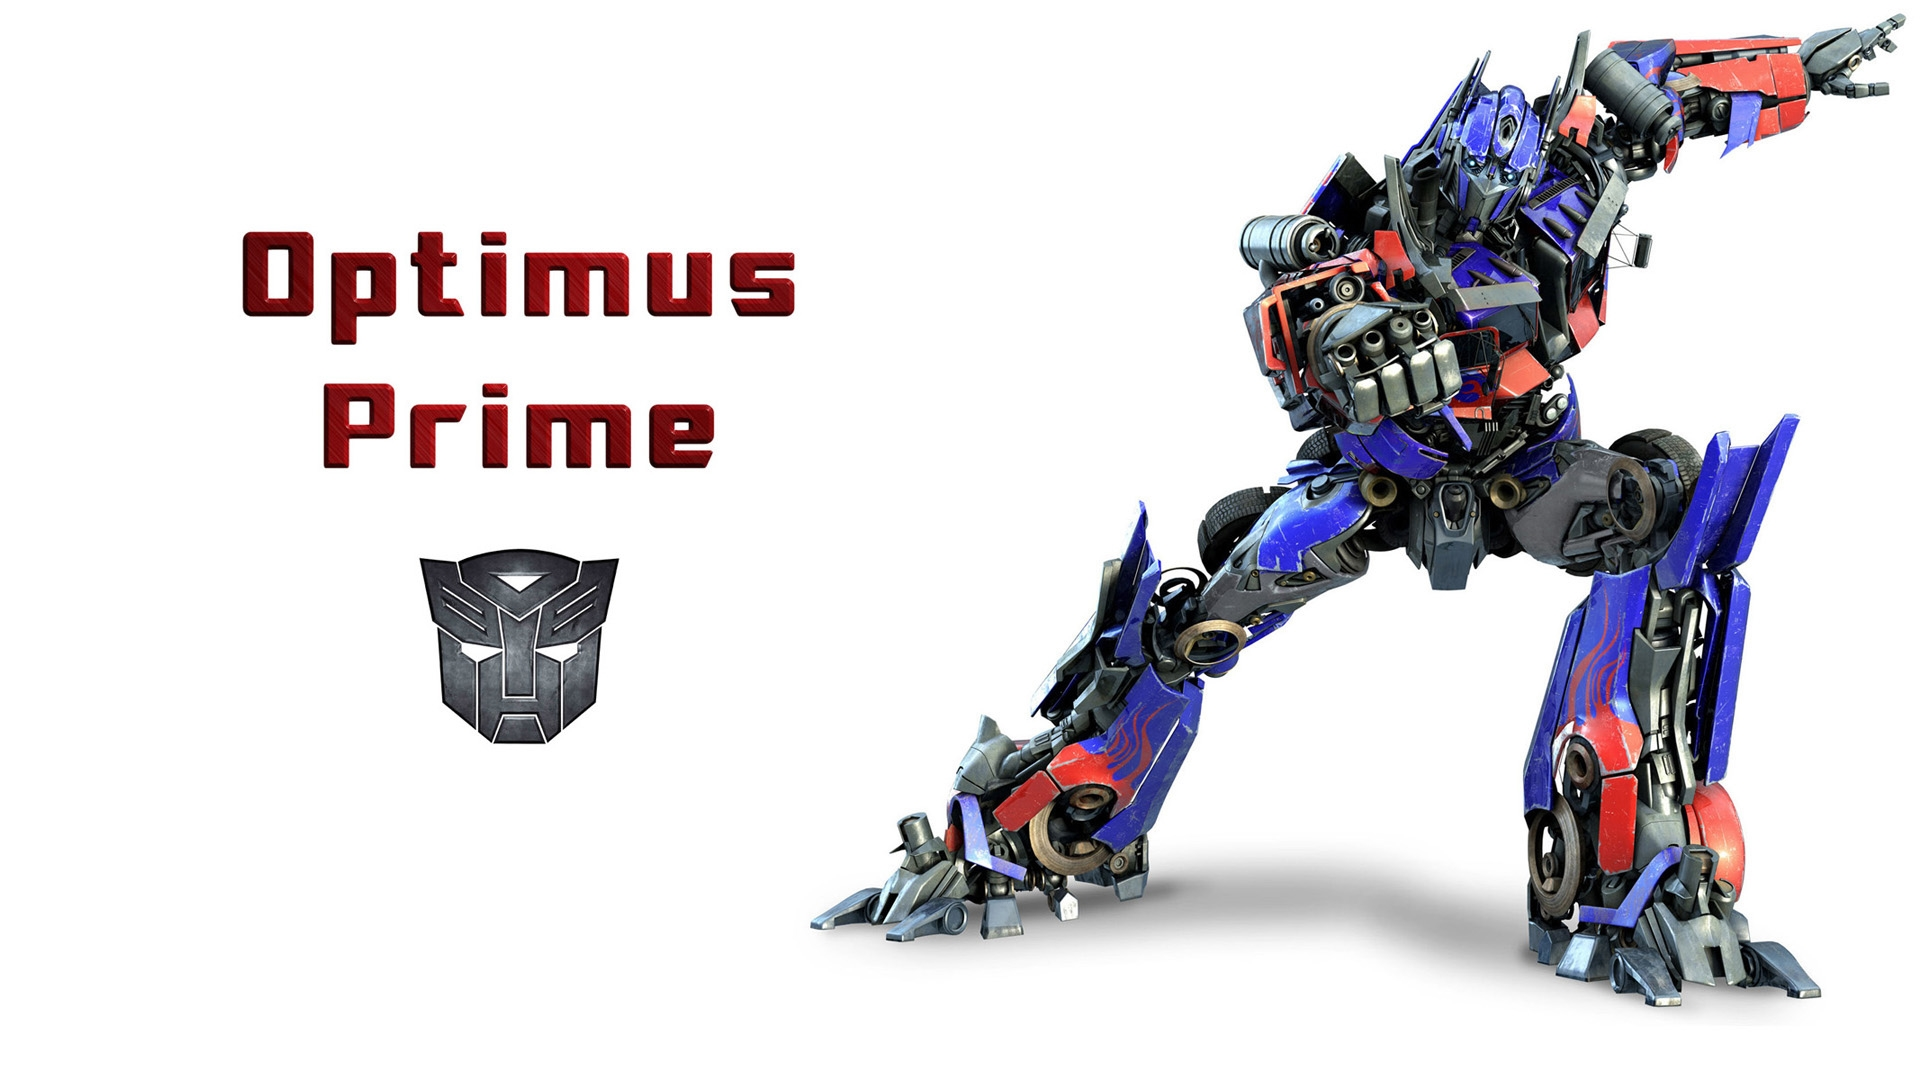 optimus prime wallpaper hd